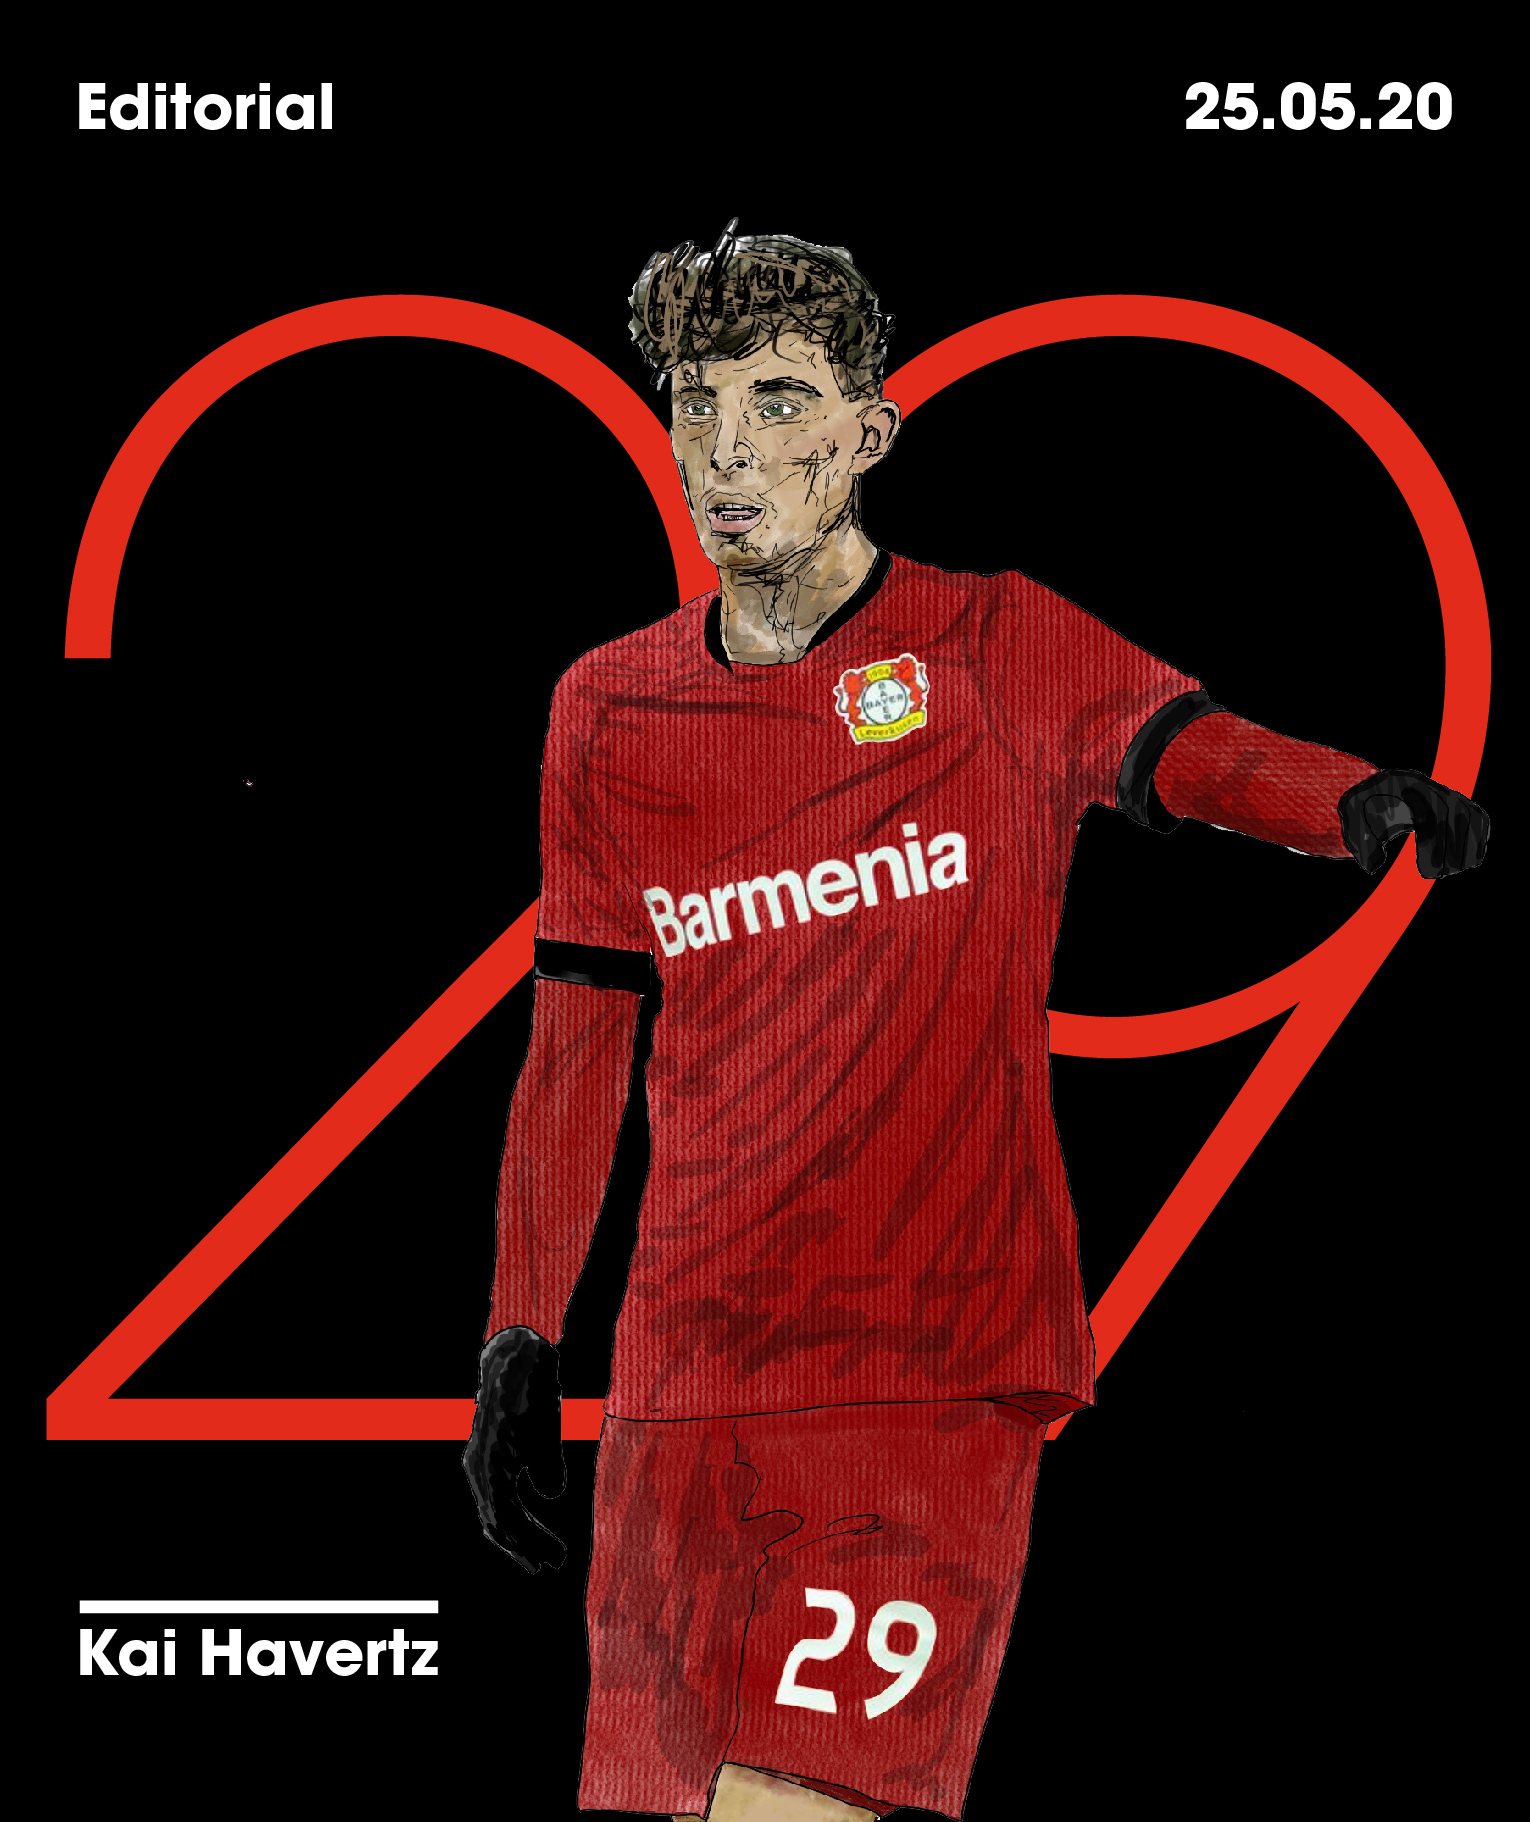 BUNDESLIGA BRATZ 02: Kai Havertz